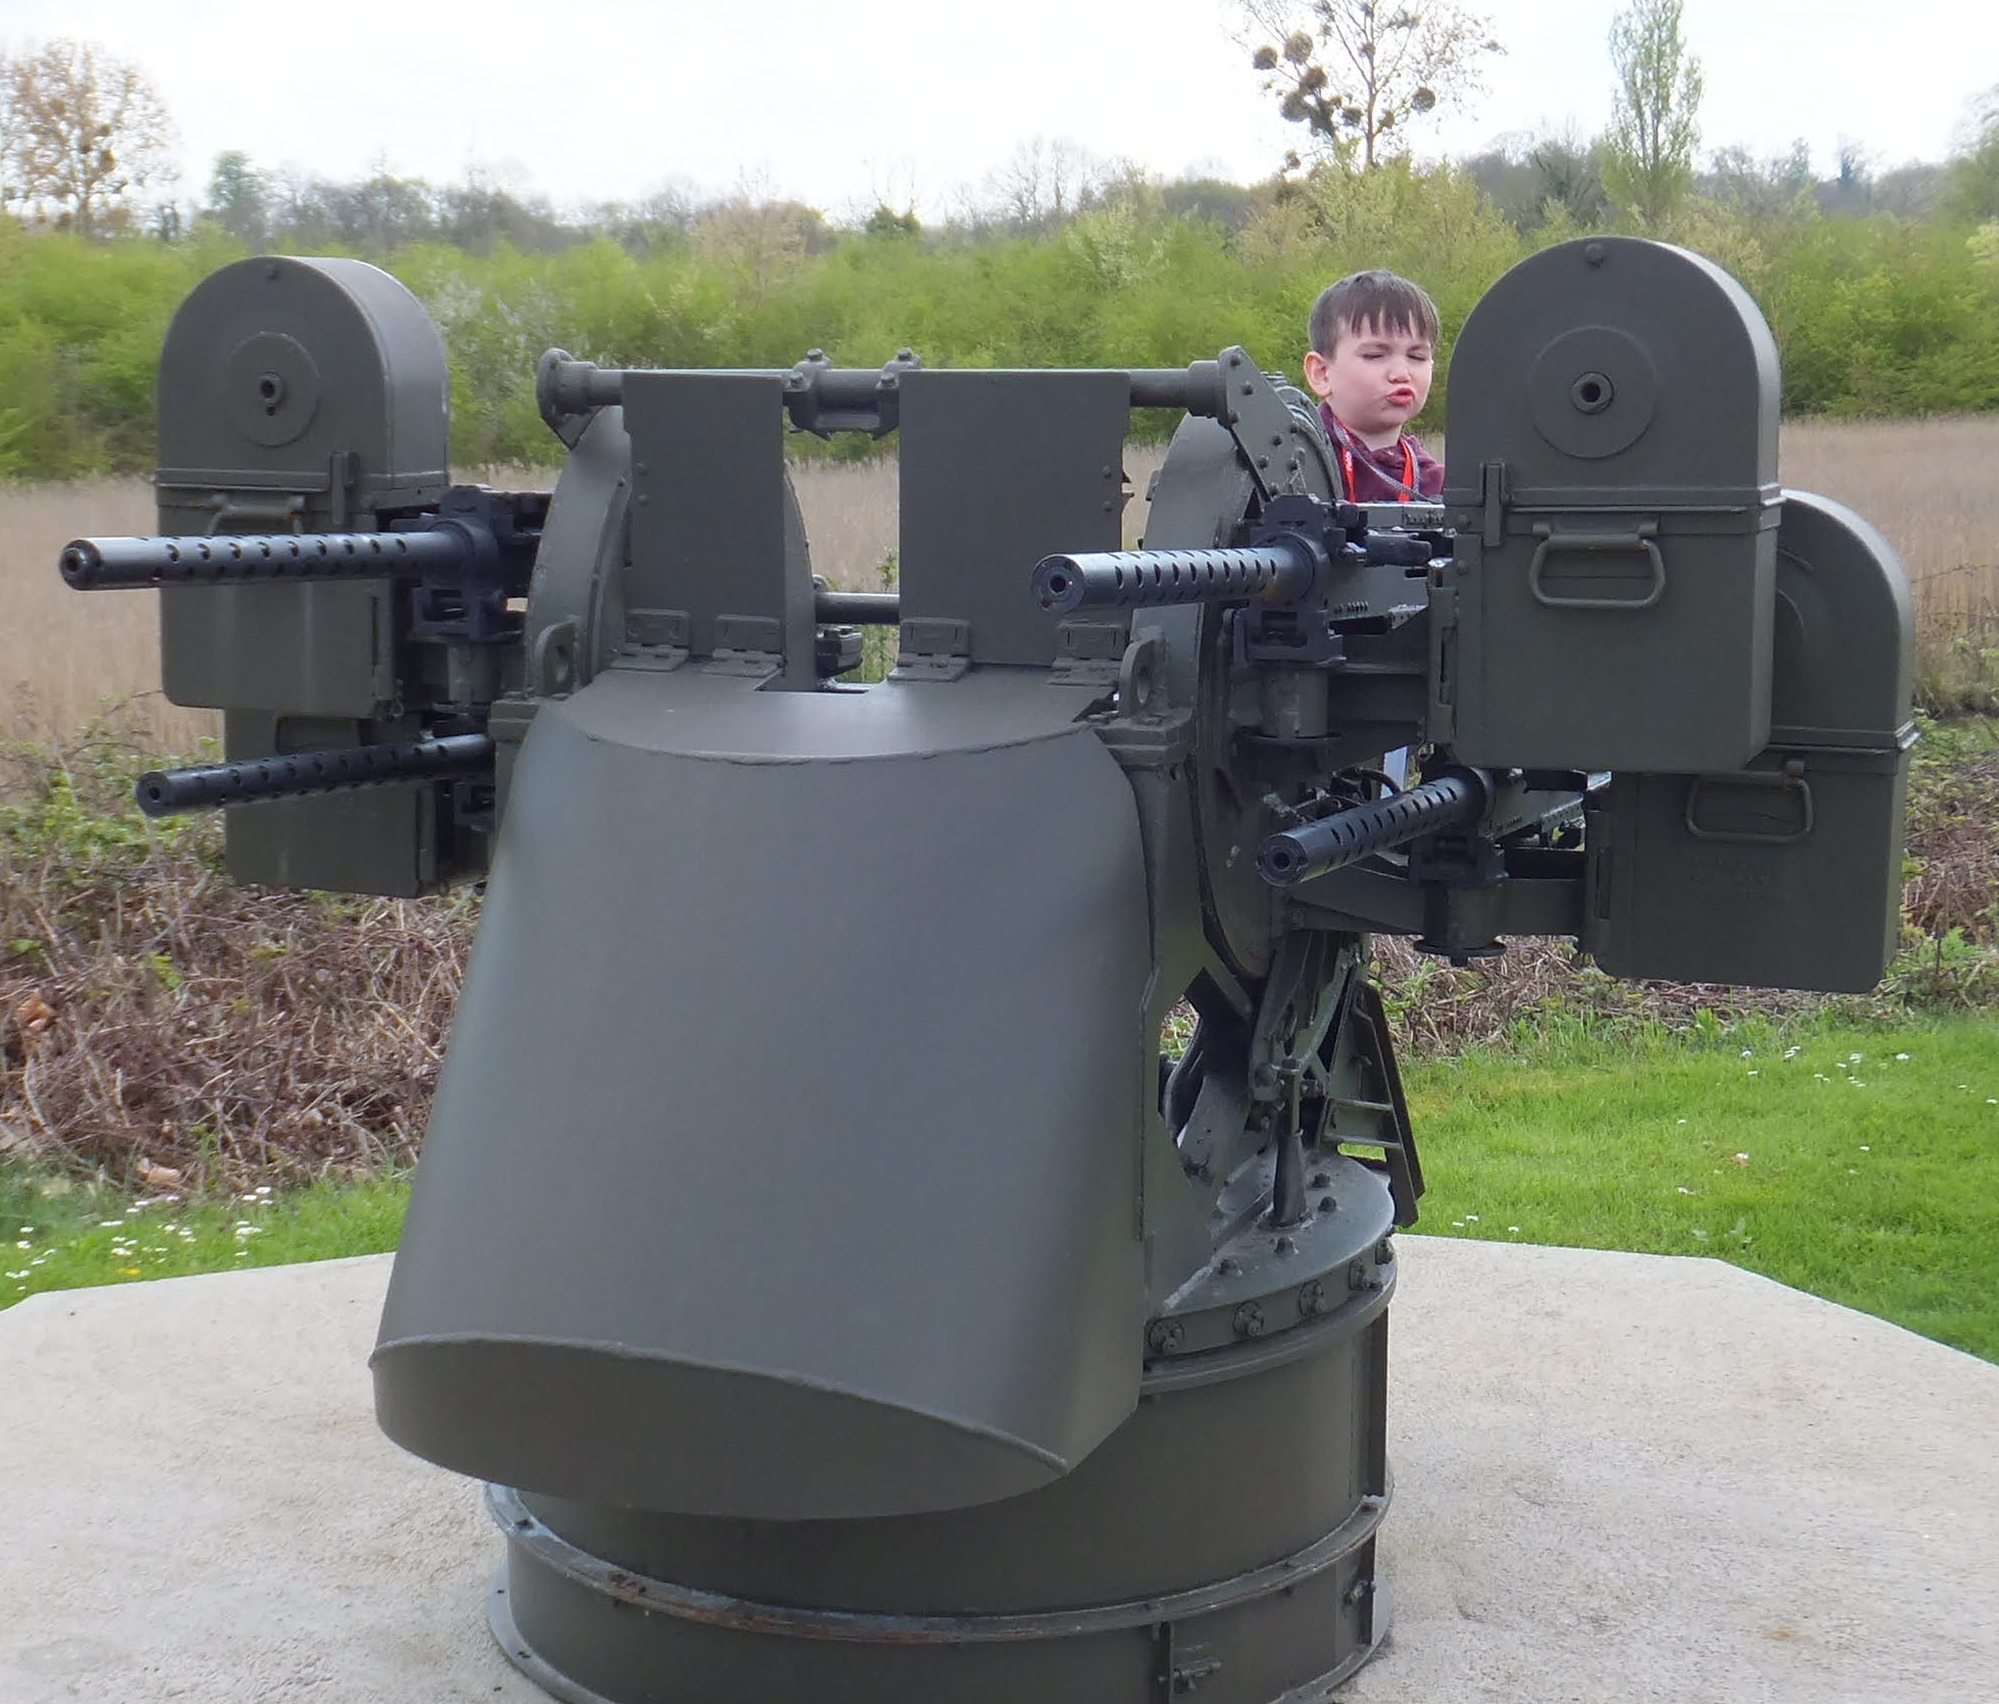 Using my imagination on the German gun at Pegasus Museum, Benouville.